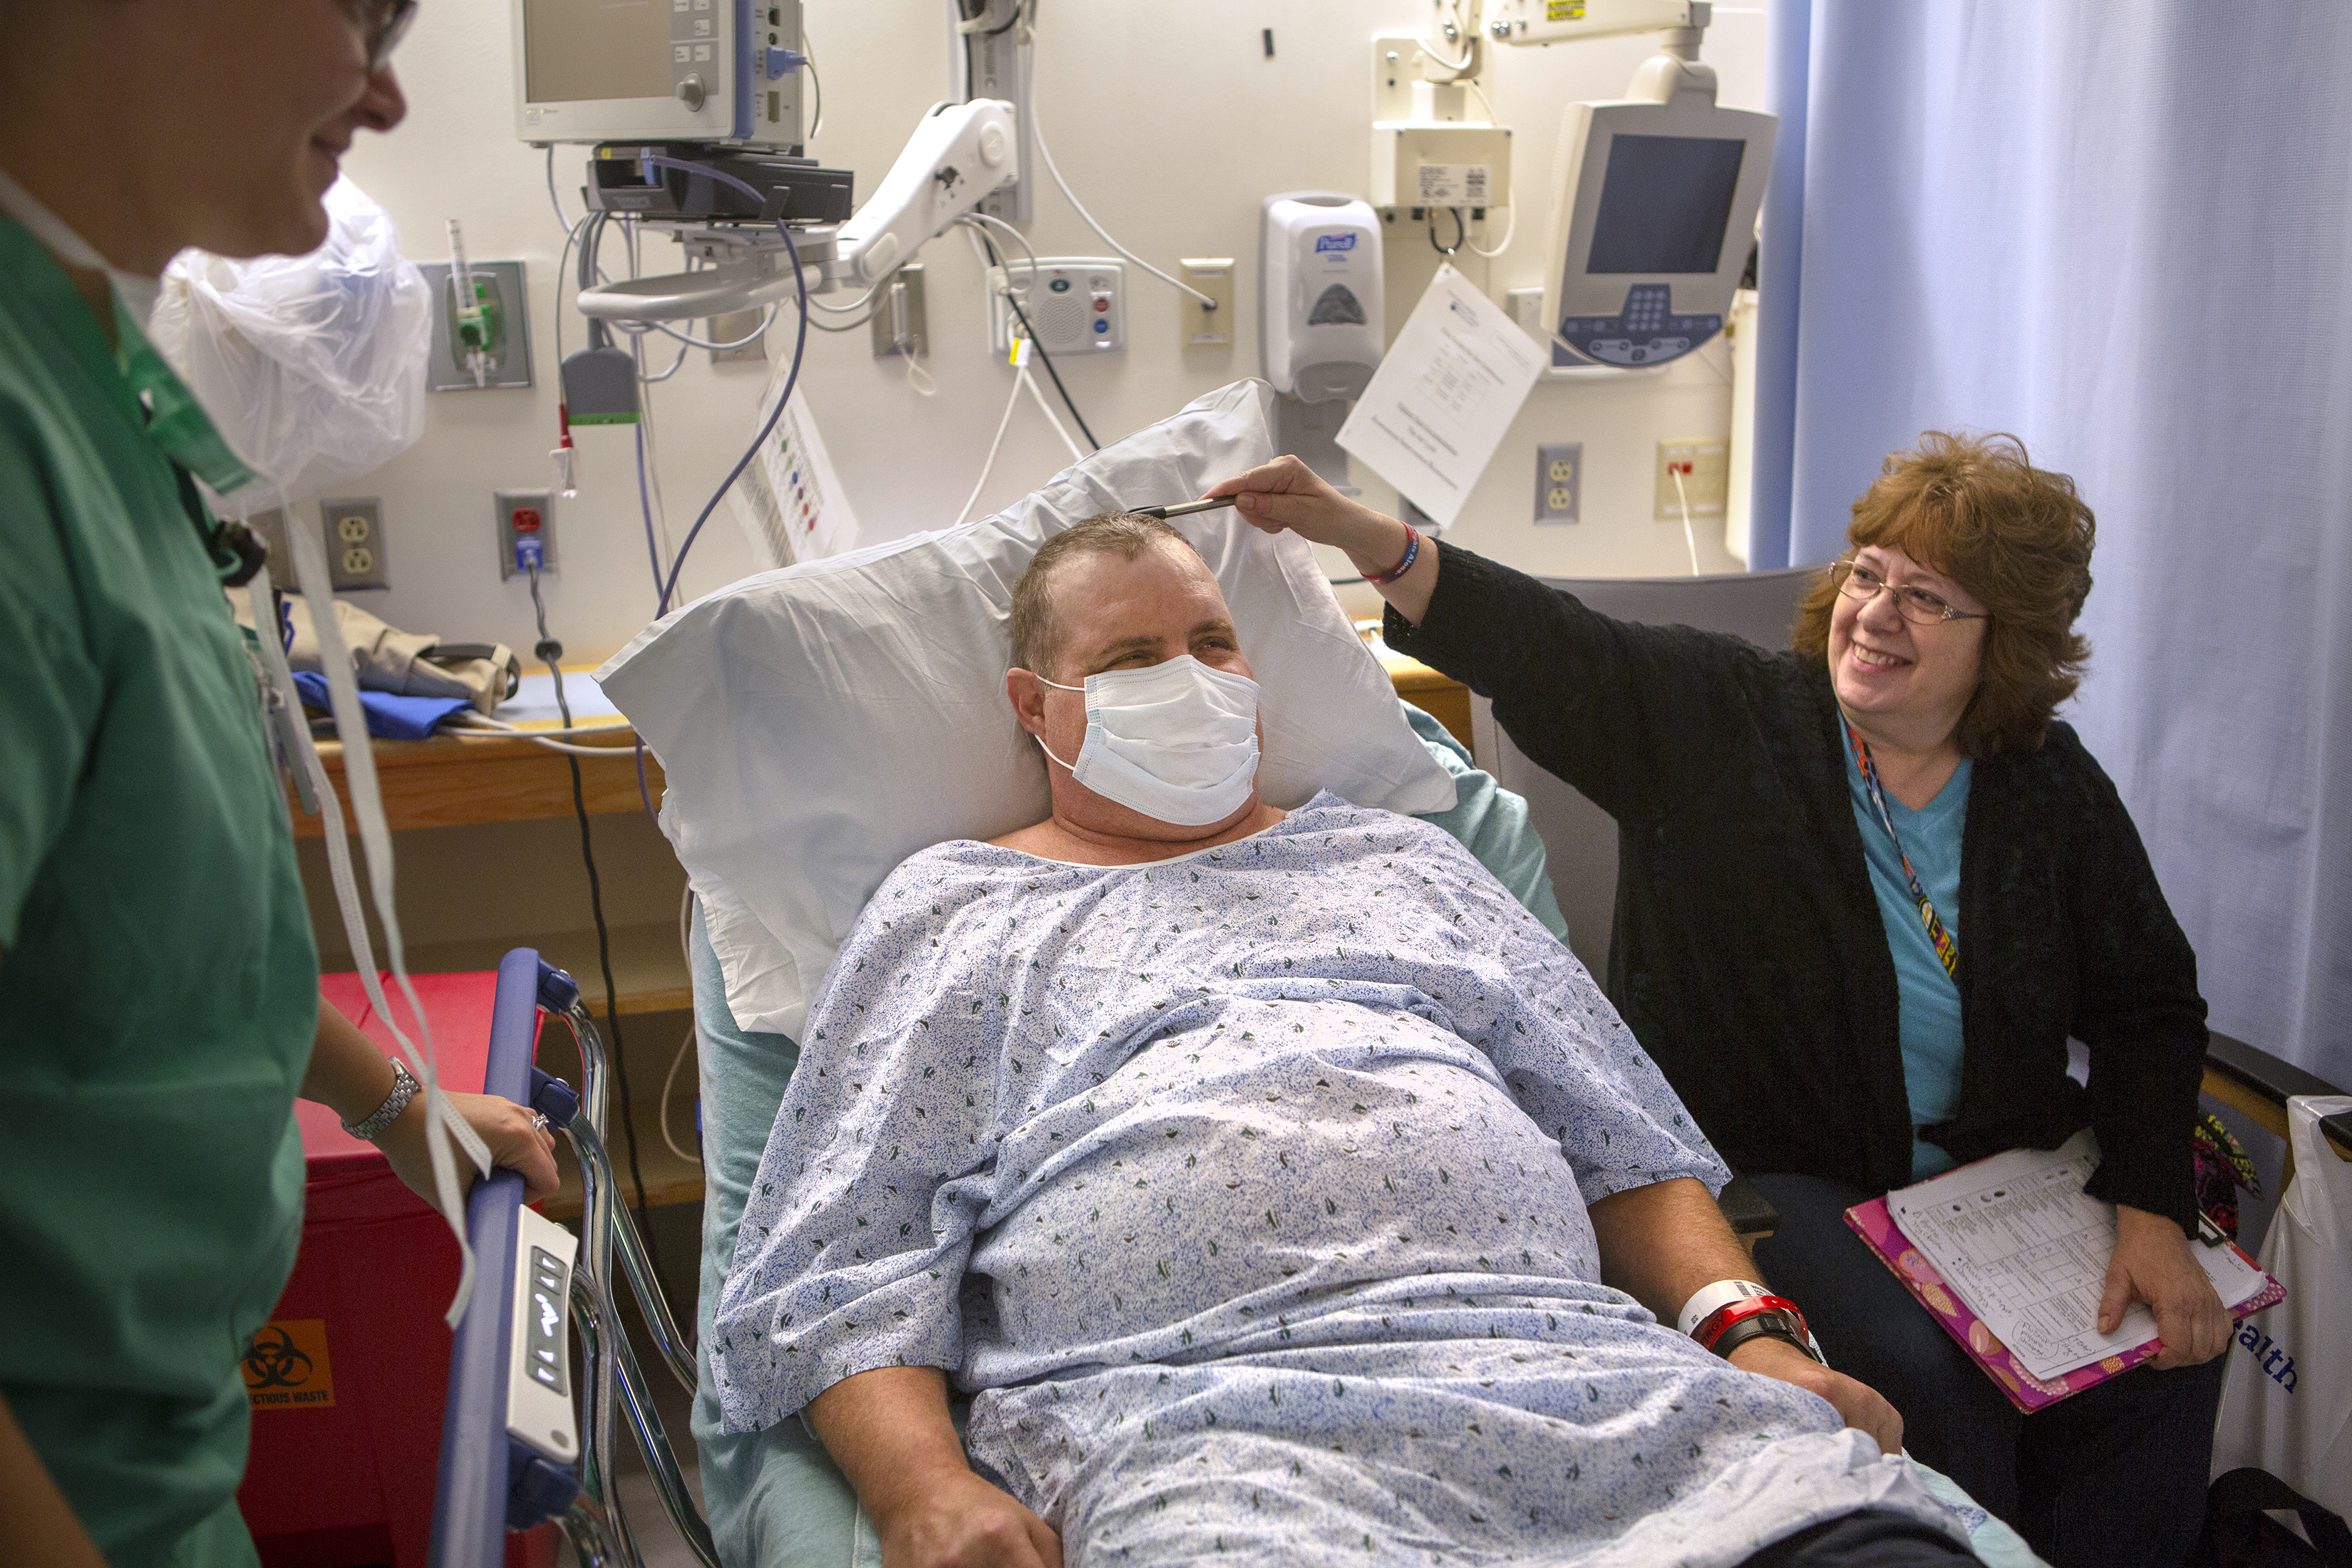 A man wearing hospital gown and mask sits propped up on a hospital bed while his wife sits next to him smiling and touches his head with a pen. A hospital worker stands on the left side and smiles. Behind them is a shelf with medical equipment and cables.